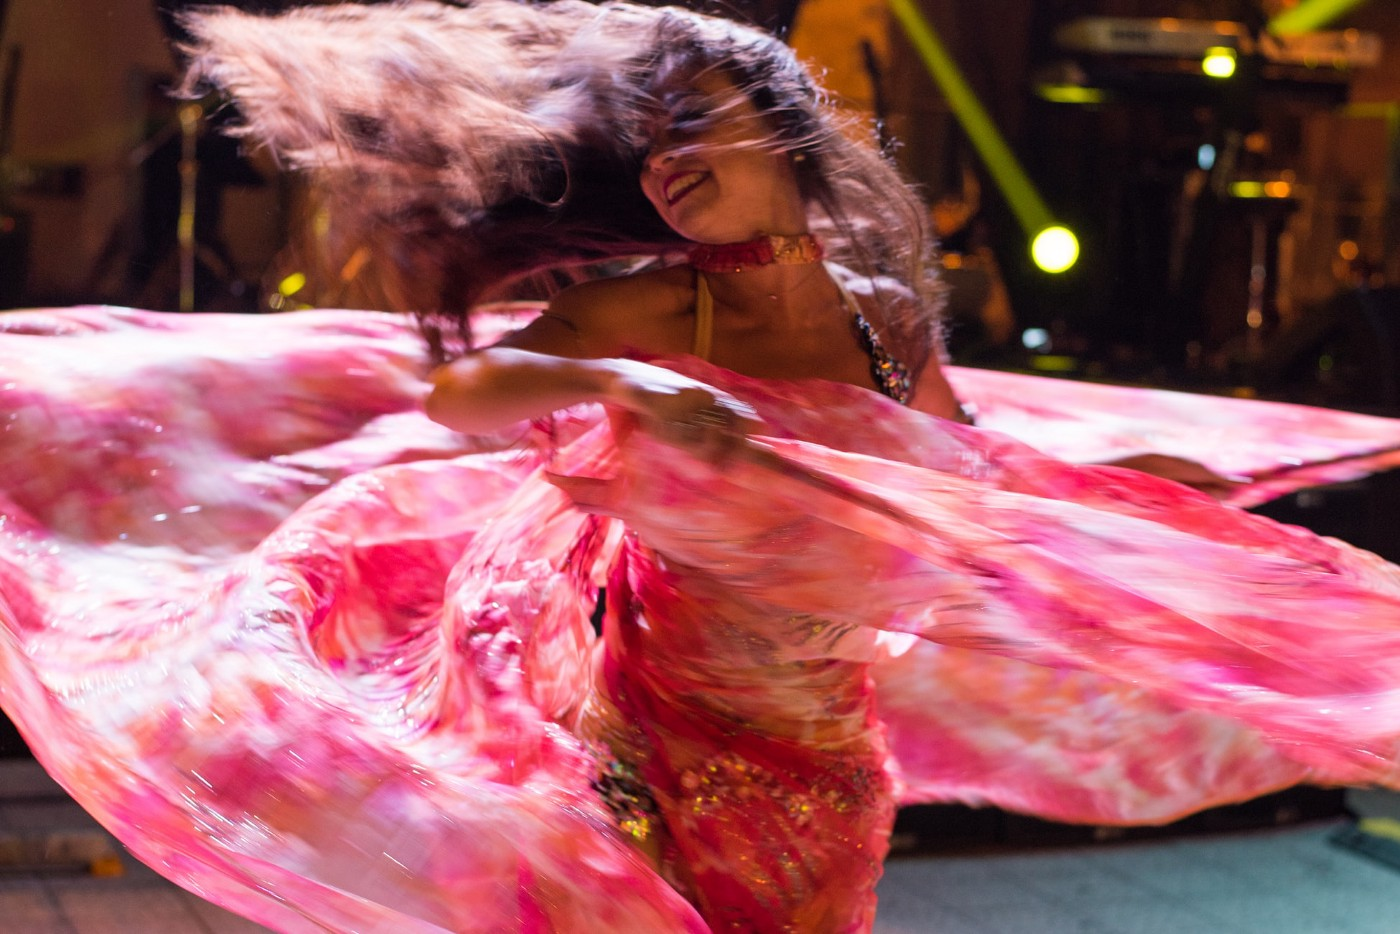 Image of a woman belly dancing/twirling in a pink dress